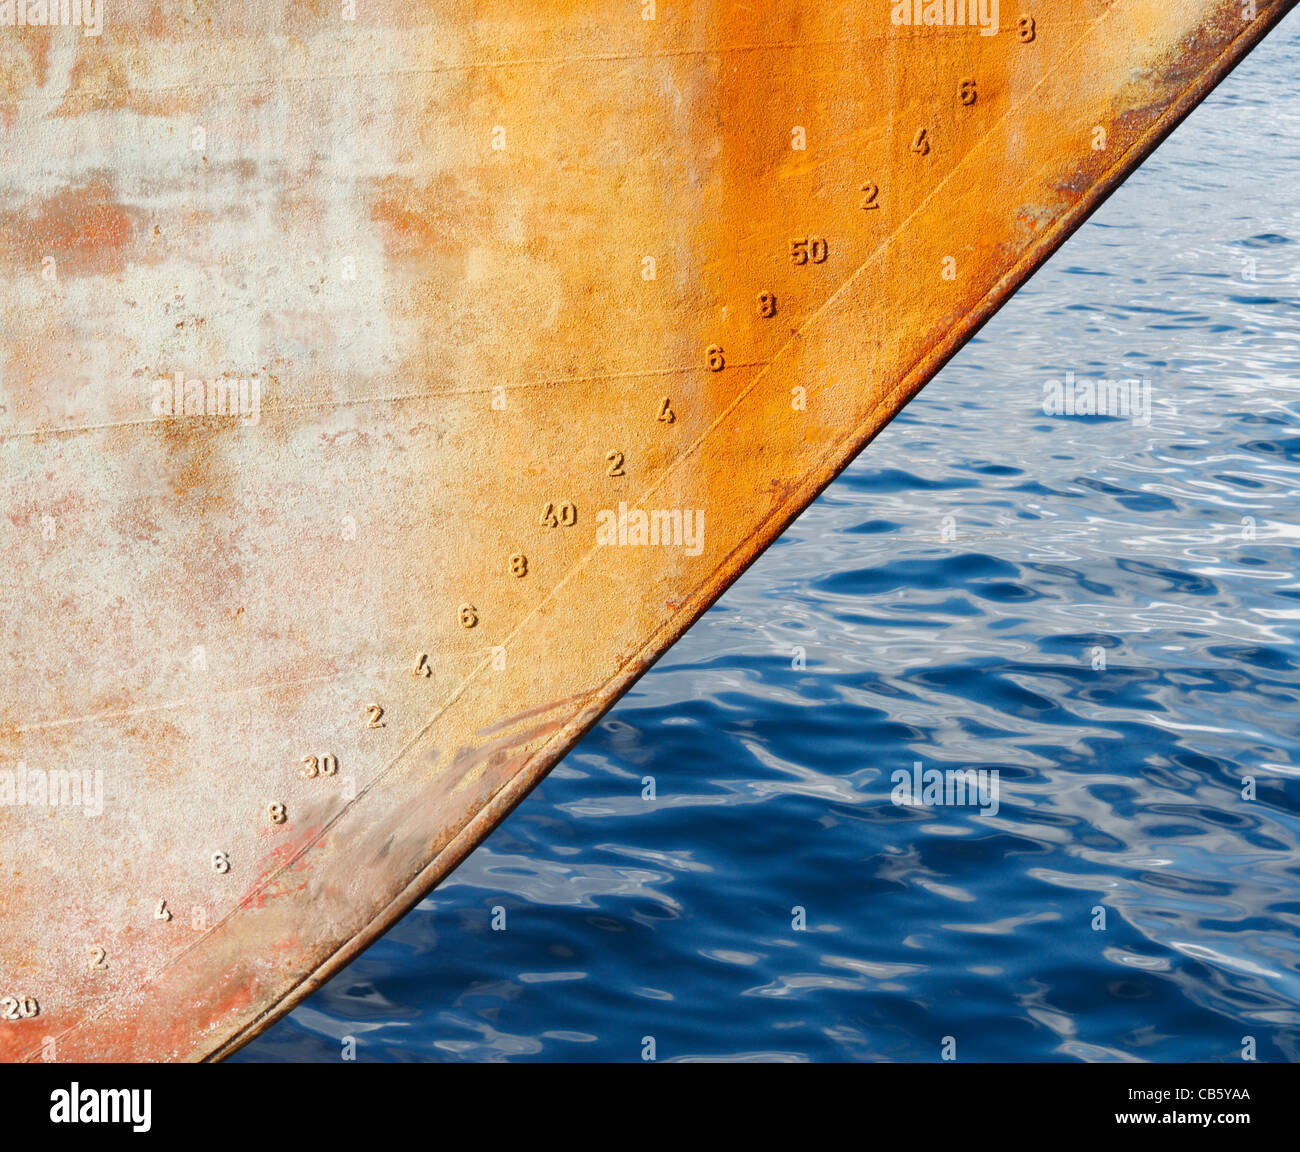 Draft markings on bow of ship - Stock Image